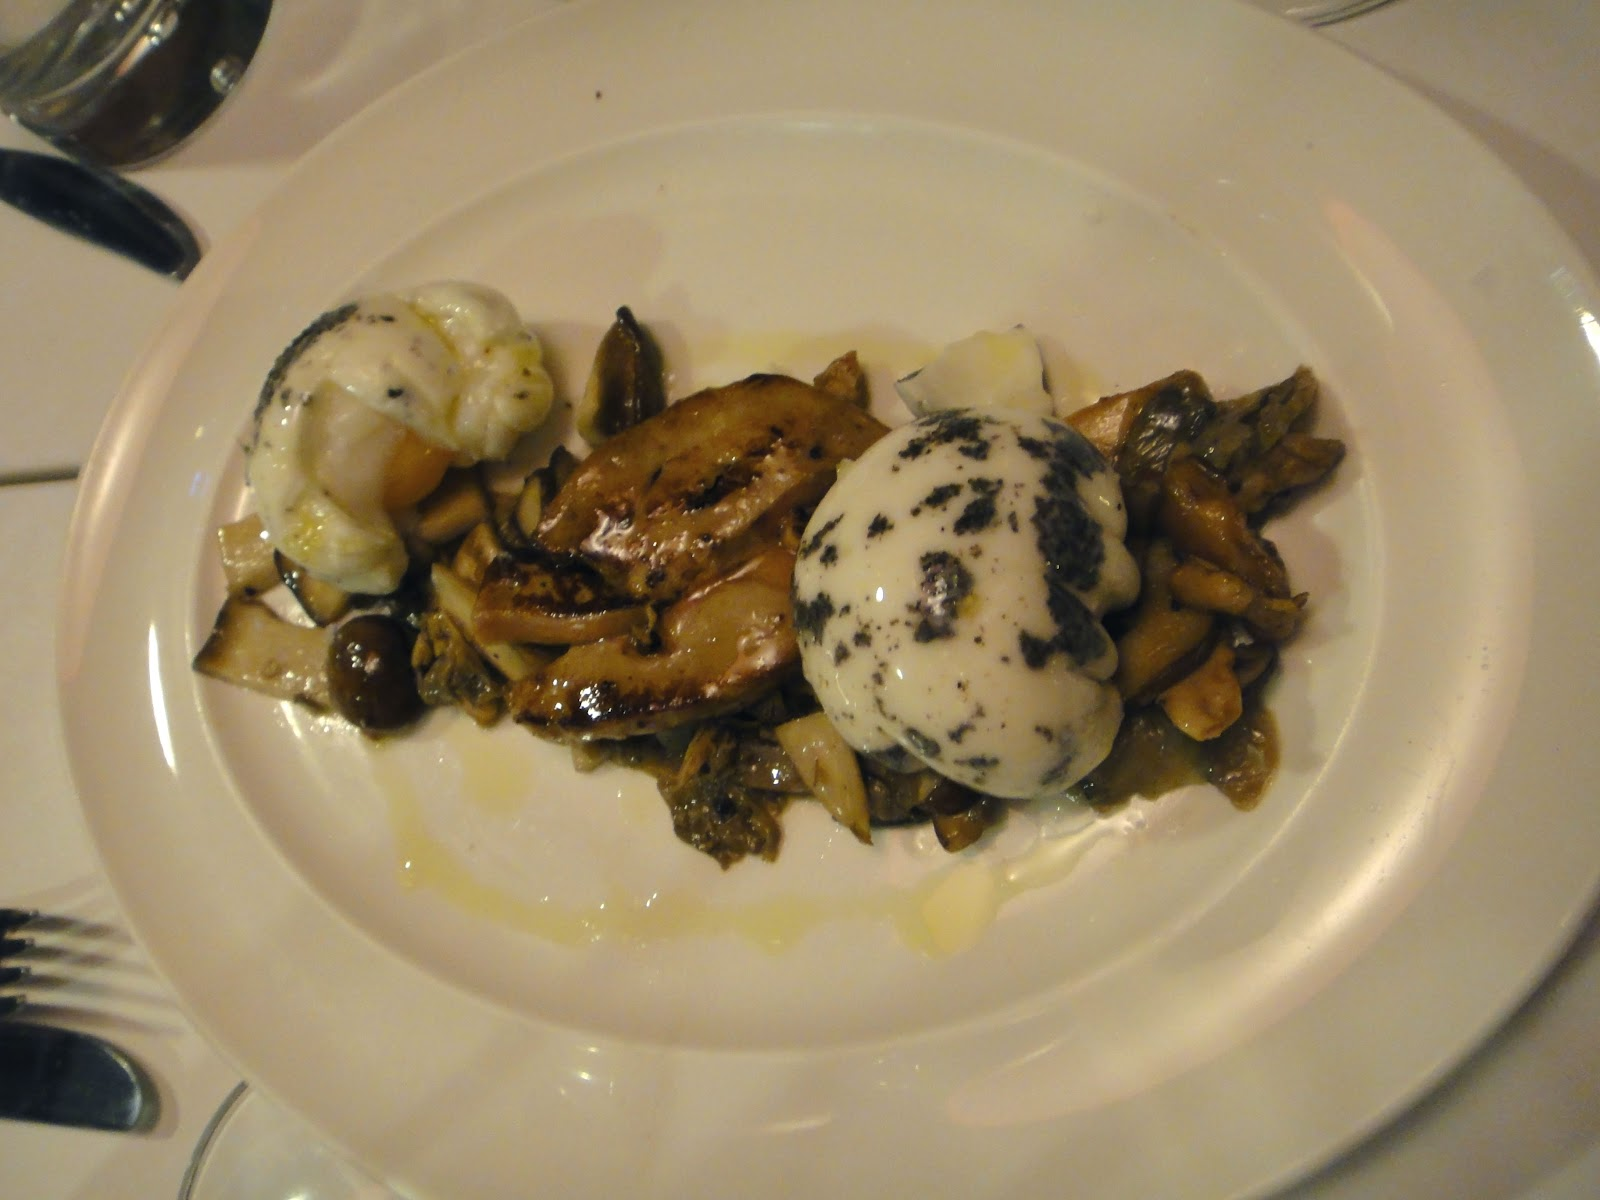 Truffle Eggs with Foie Gras and Mushrooms